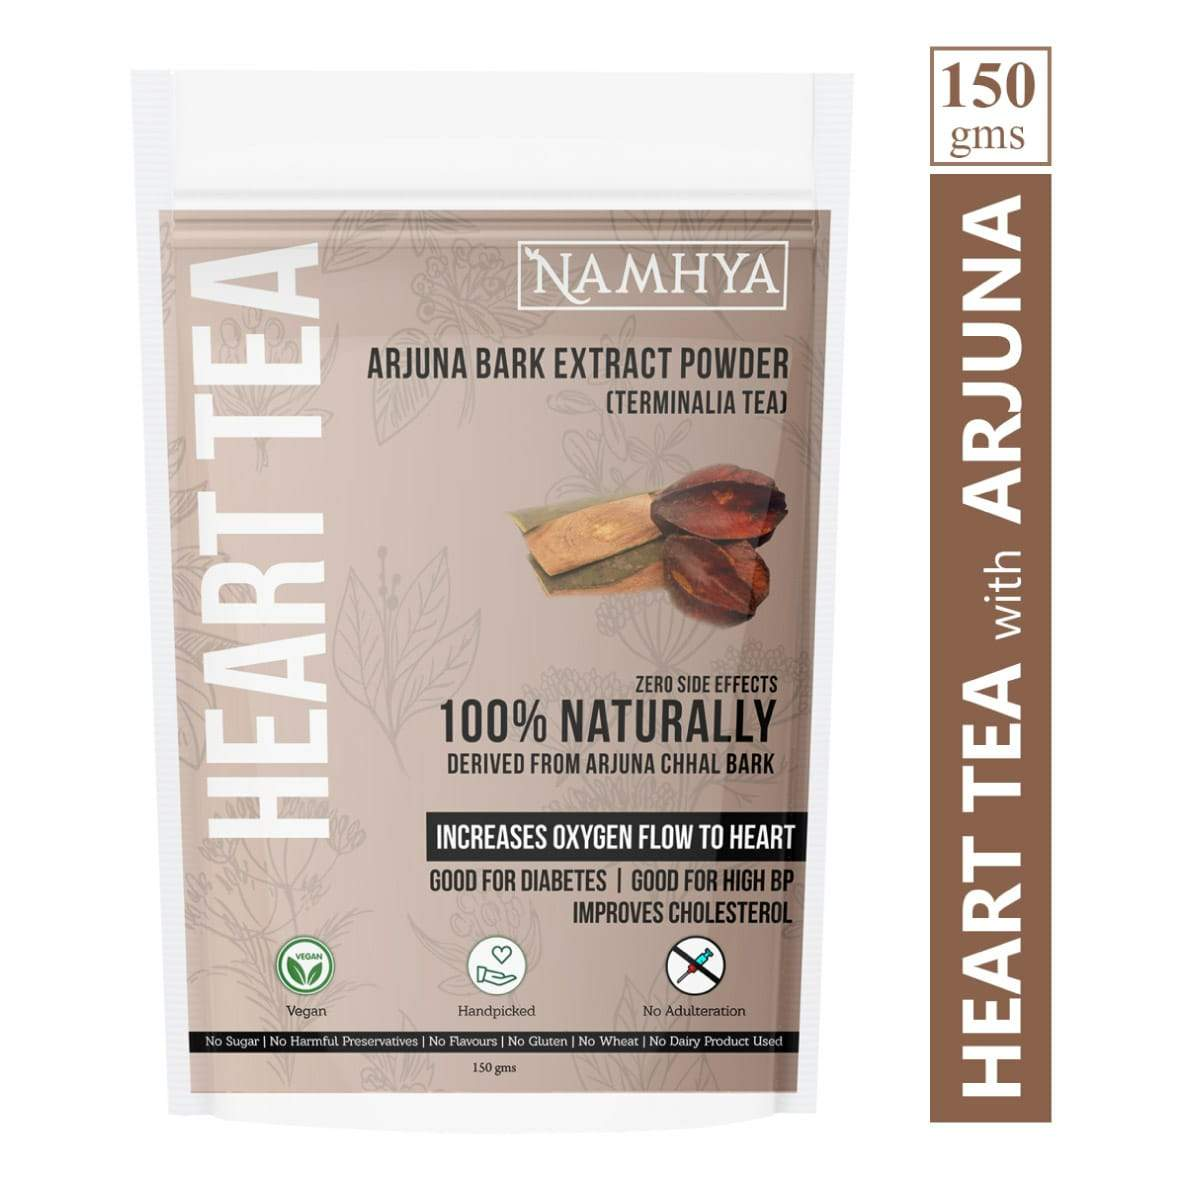 Heart Tea (Arjuna Bark Extract Powder) - Pack of 2, 2 x 150 g